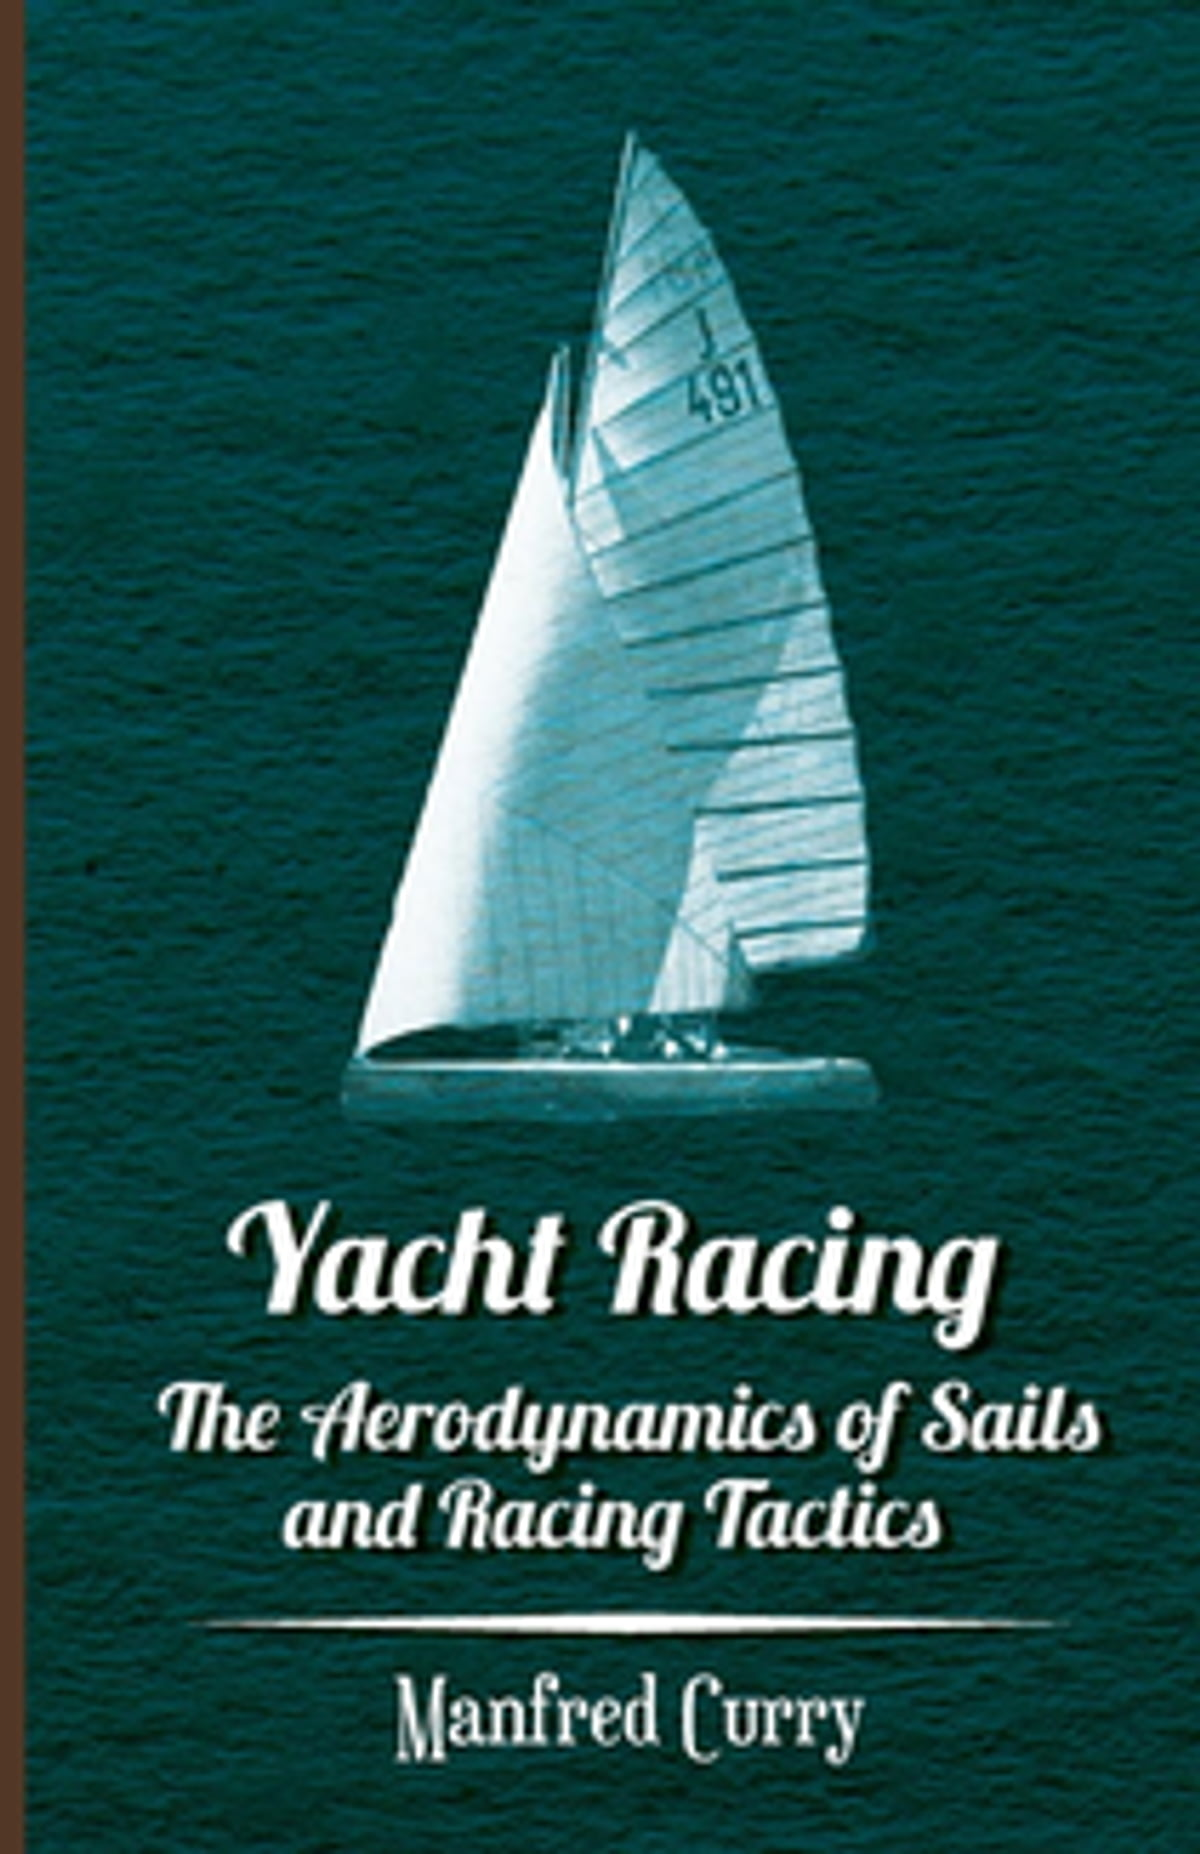 Yacht Racing - The Aerodynamics of Sails and Racing Tactics eBook by  Manfred Curry - 9781447481348 | Rakuten Kobo